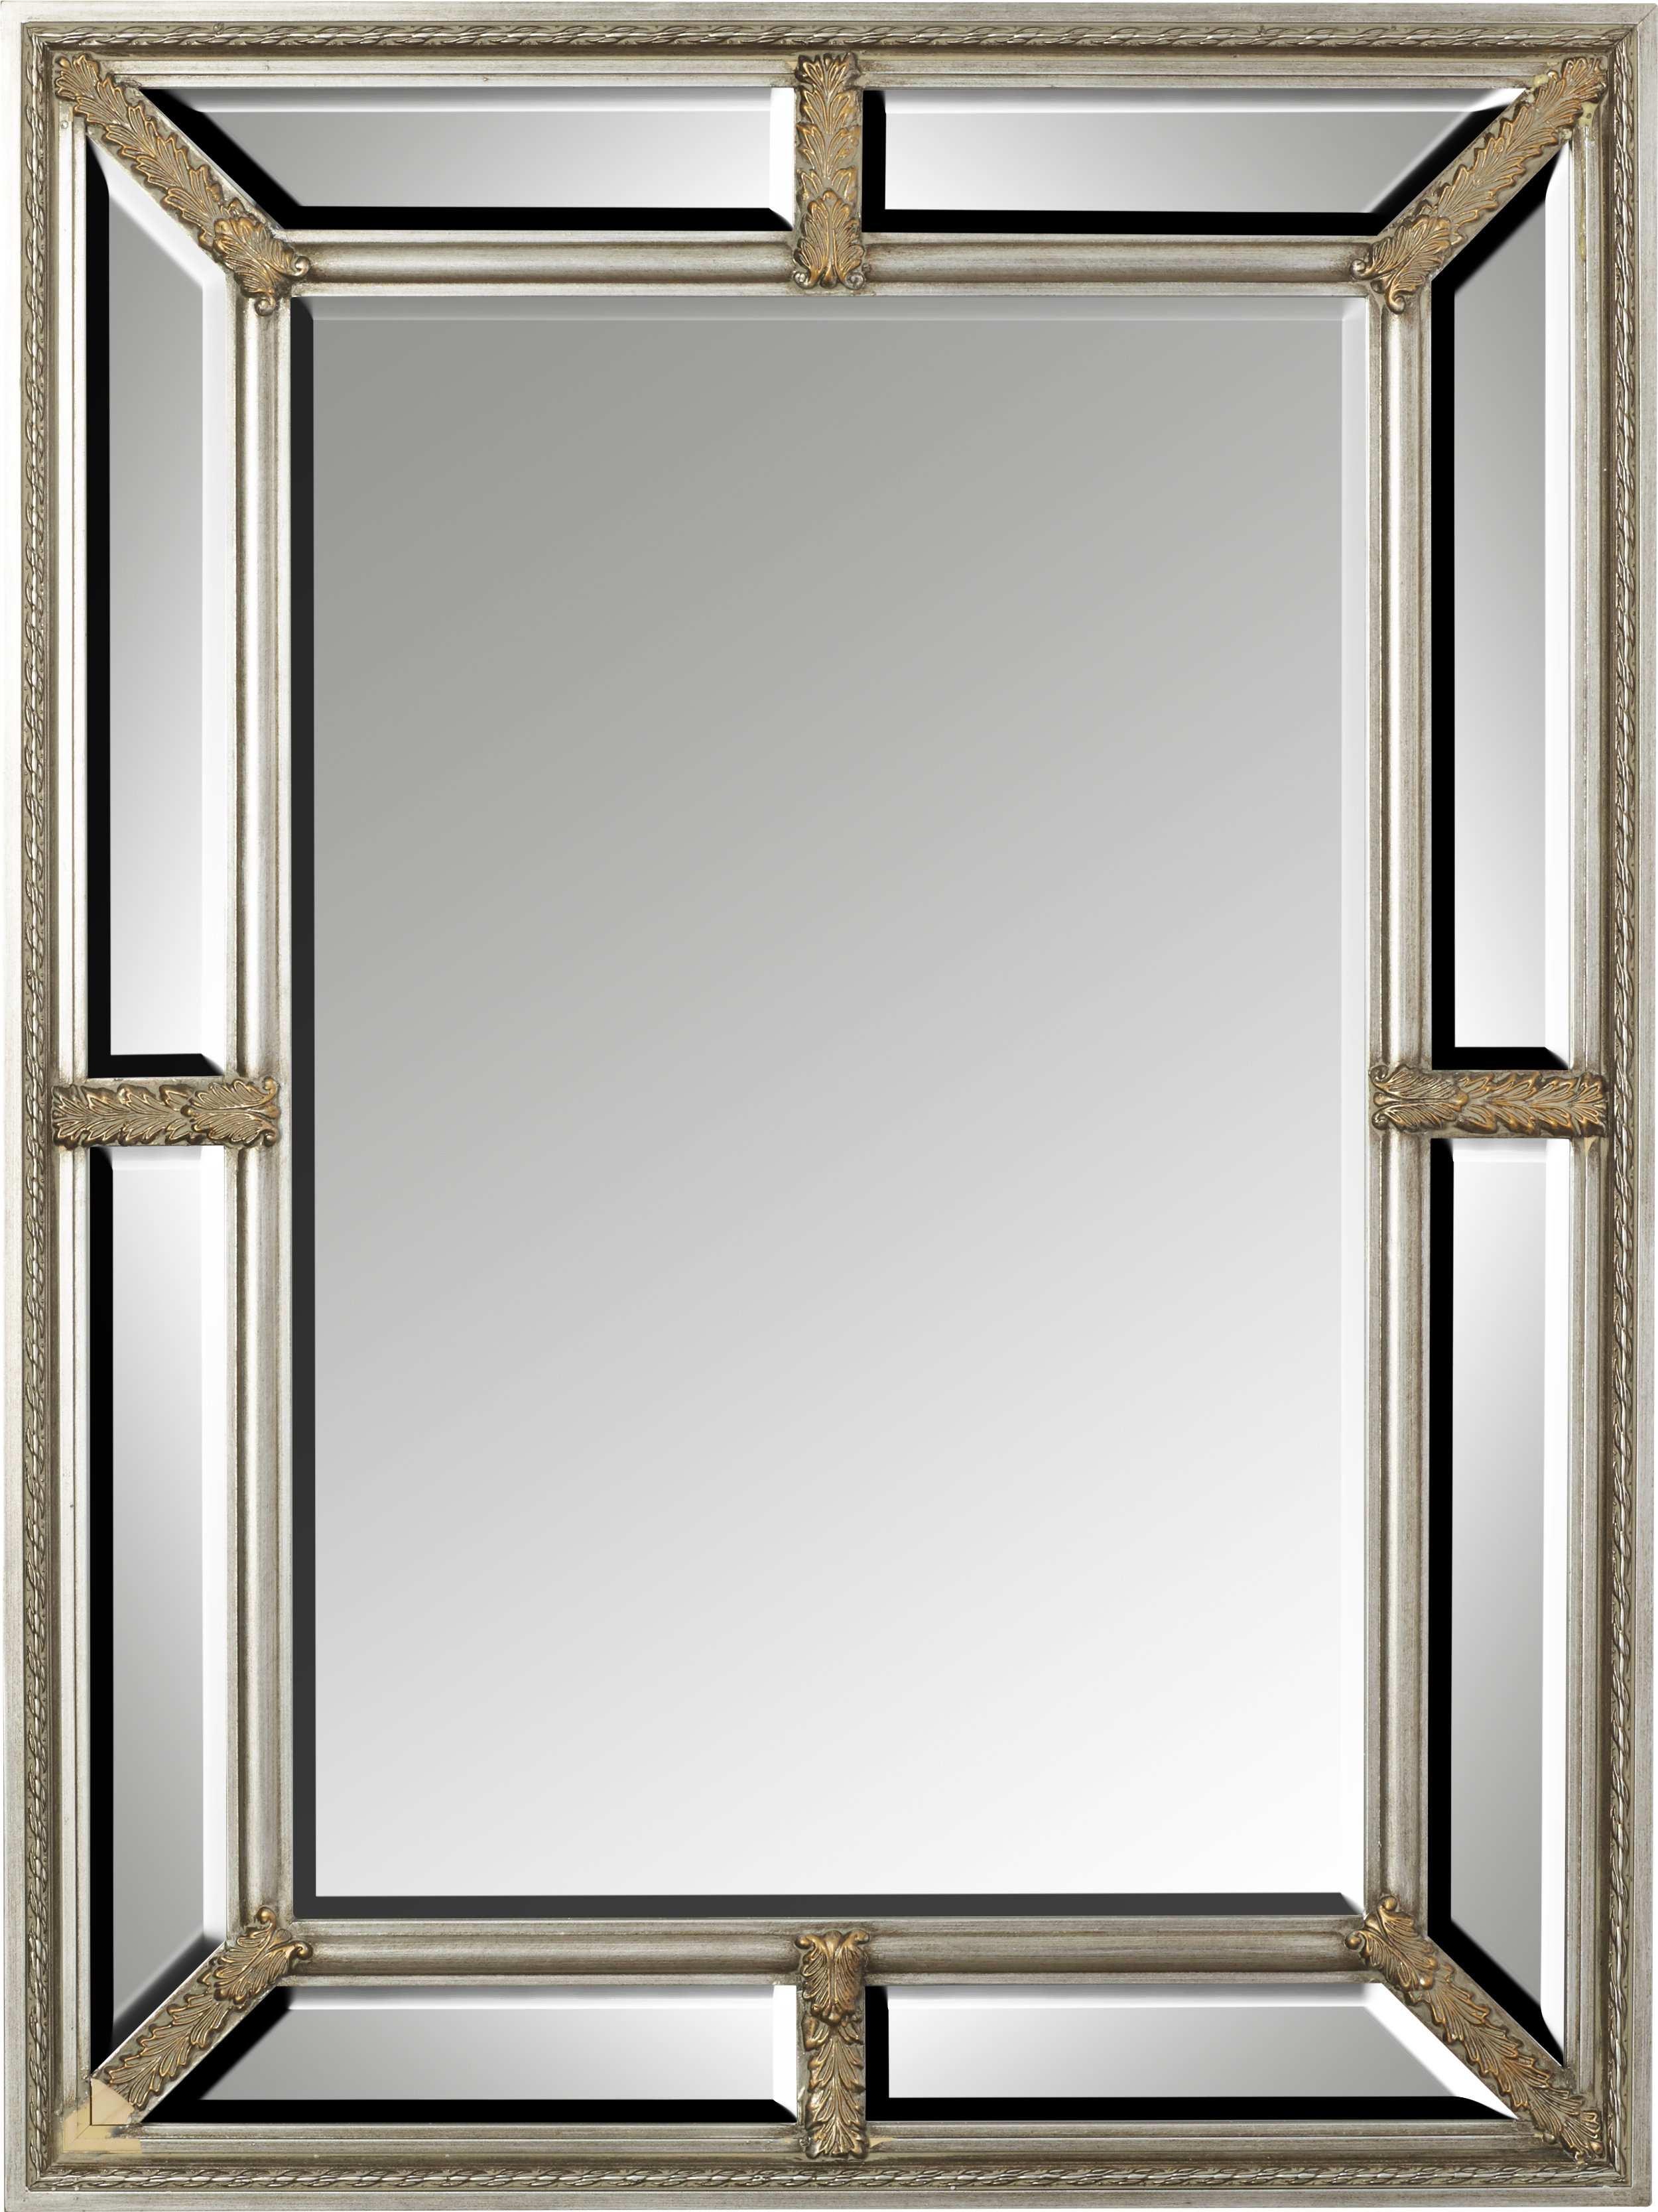 Beaston Accent Mirror | Joss & Main Intended For Boyers Wall Mirrors (Image 2 of 20)